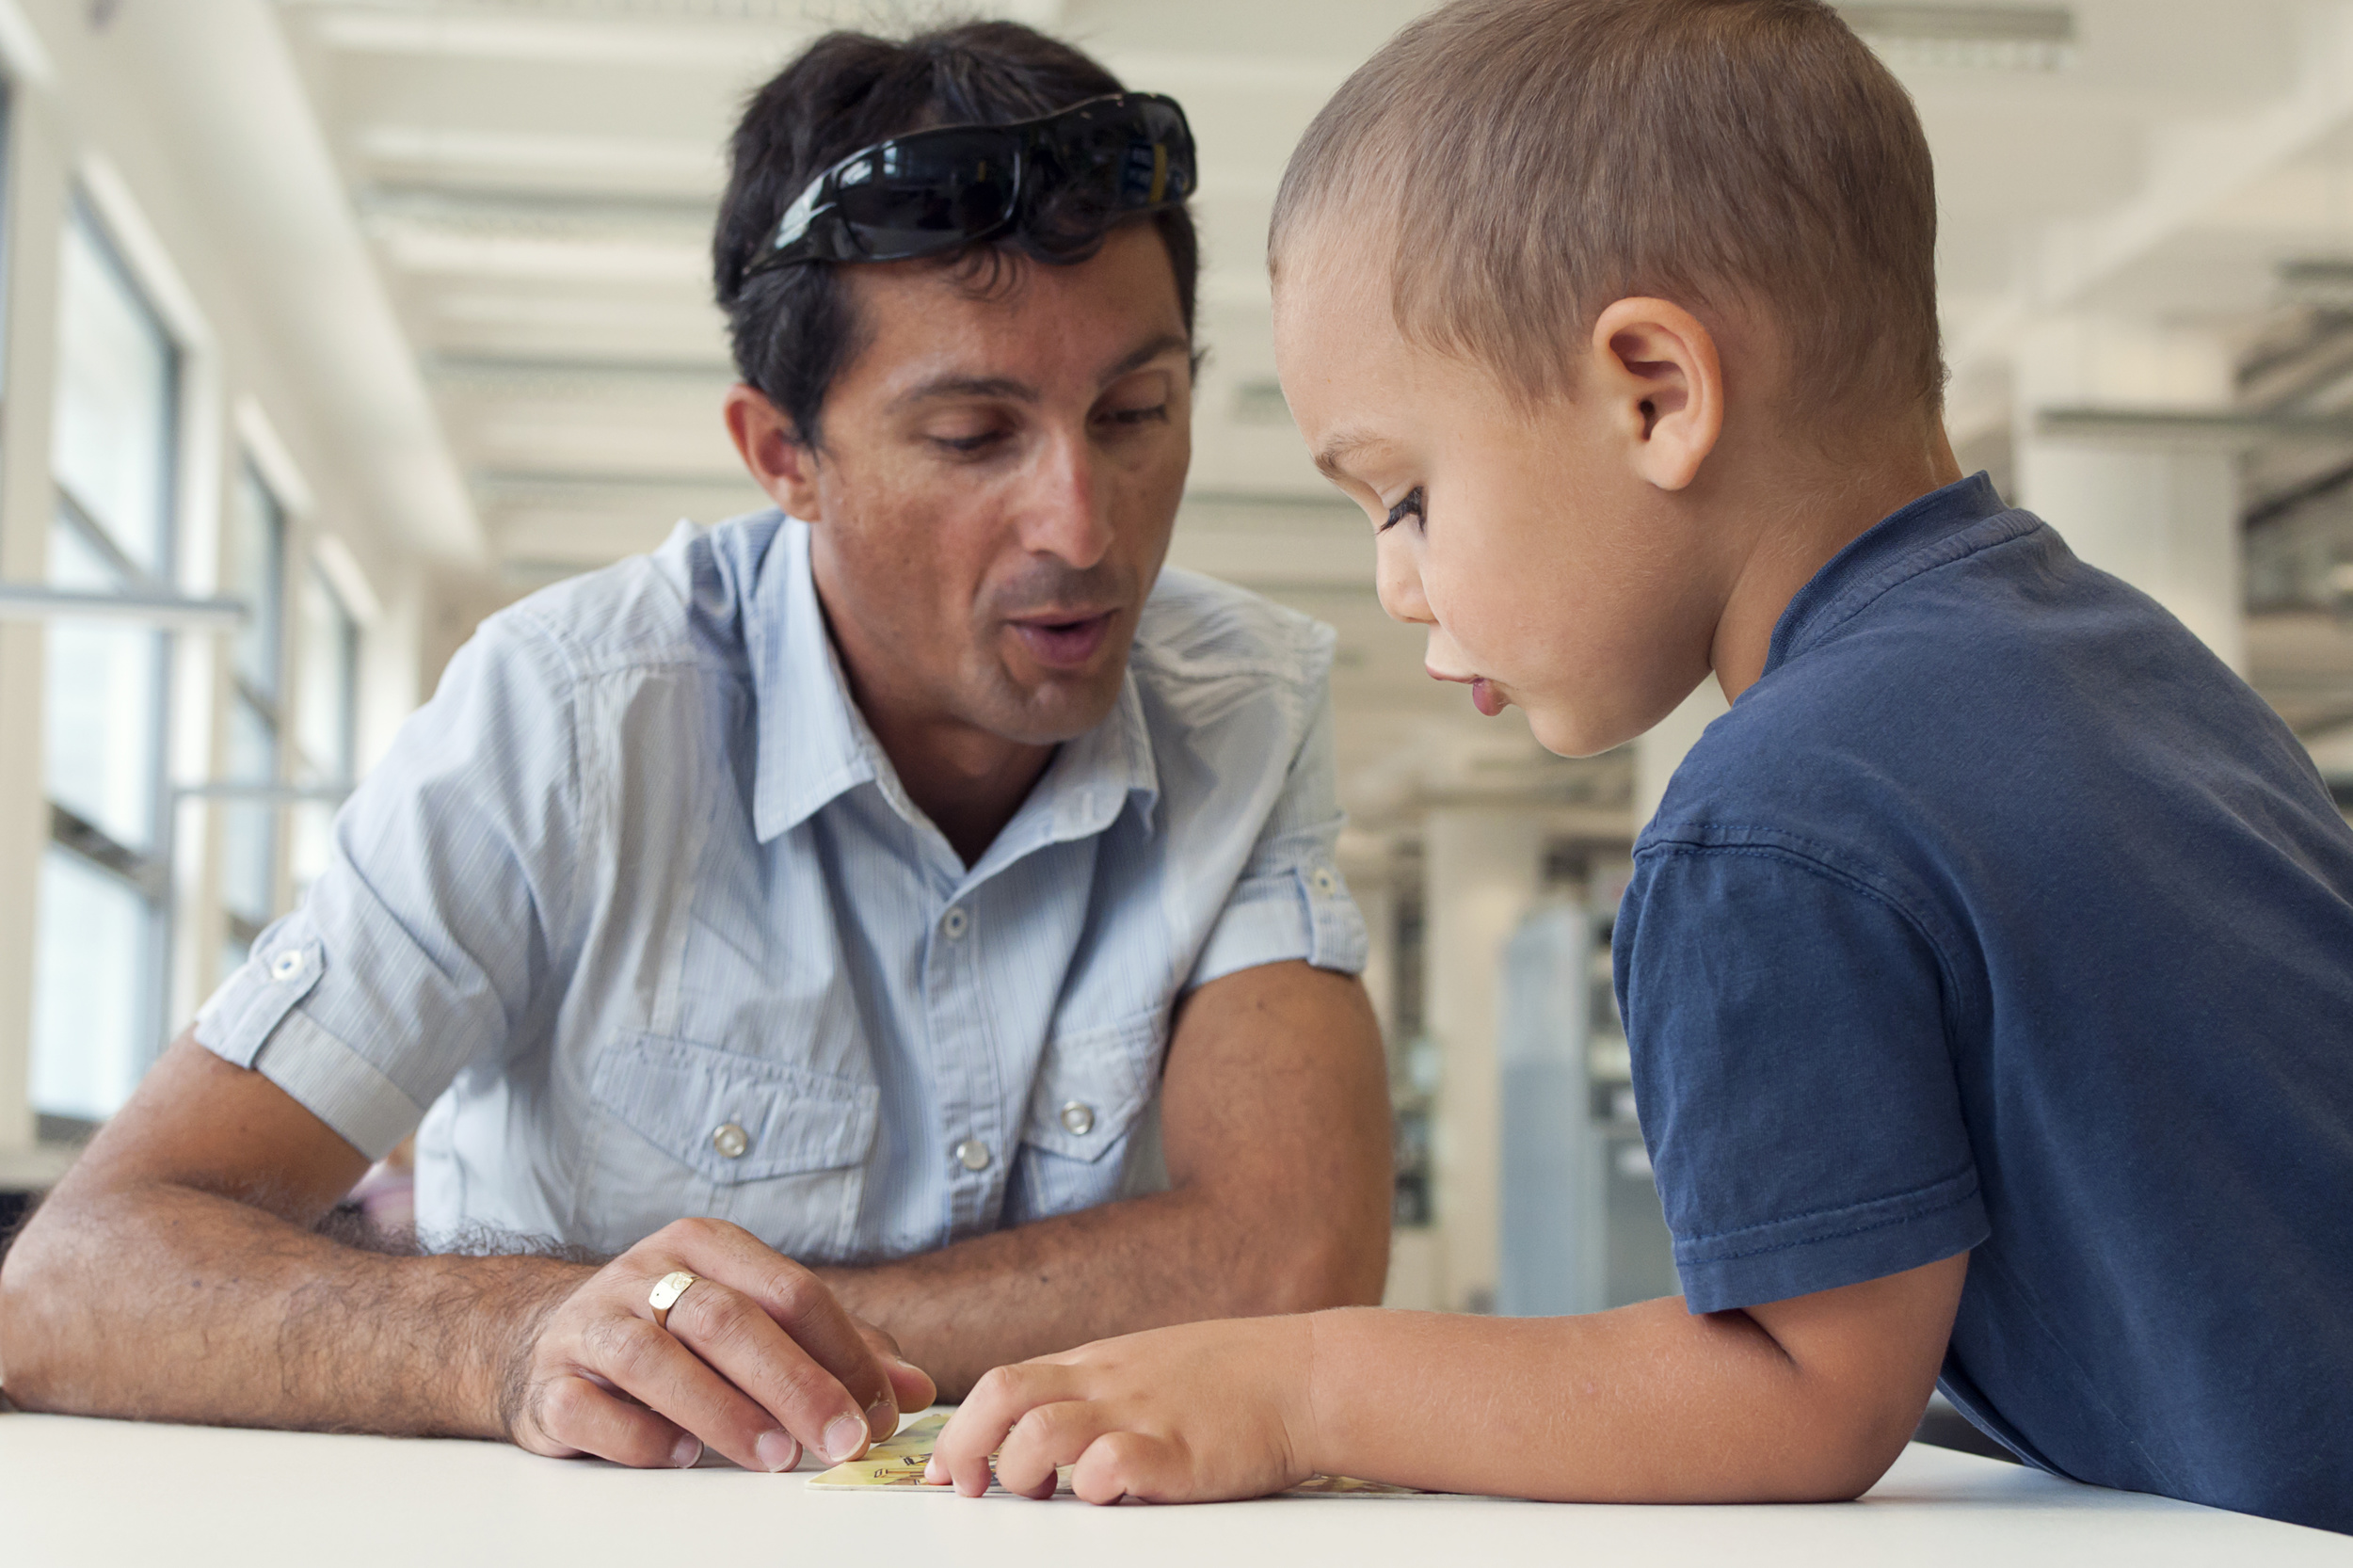 Children are learning and thinking about mathematics differently in 2015 and that is a good thing.